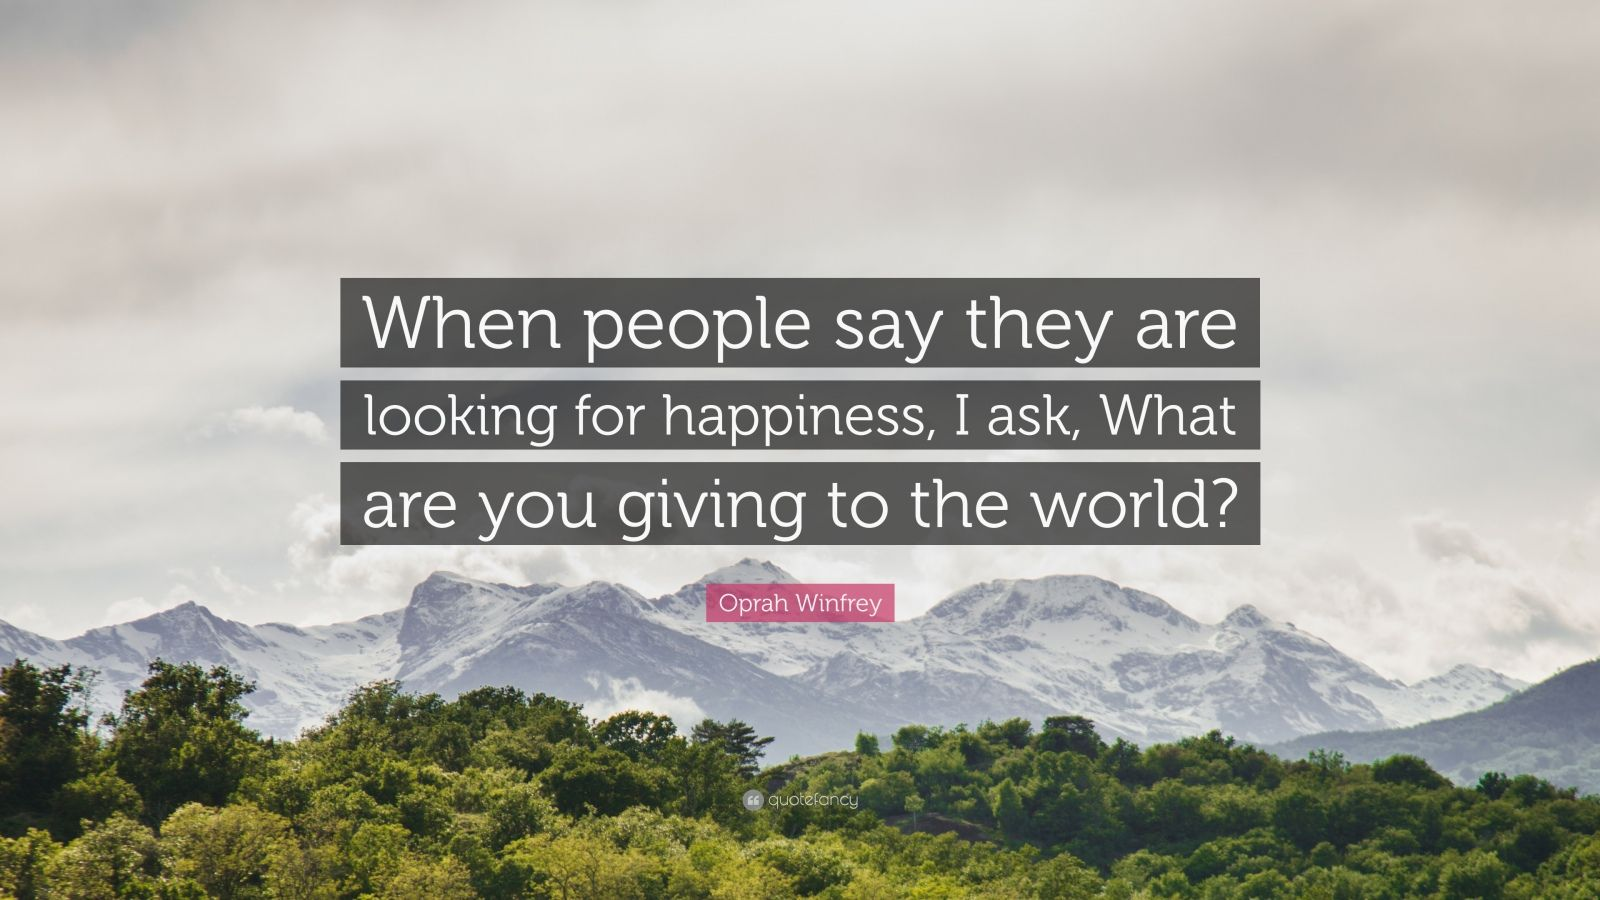 """Oprah Winfrey Quote: """"When people say they are looking for happiness, I ask, What are you giving to the world?"""""""